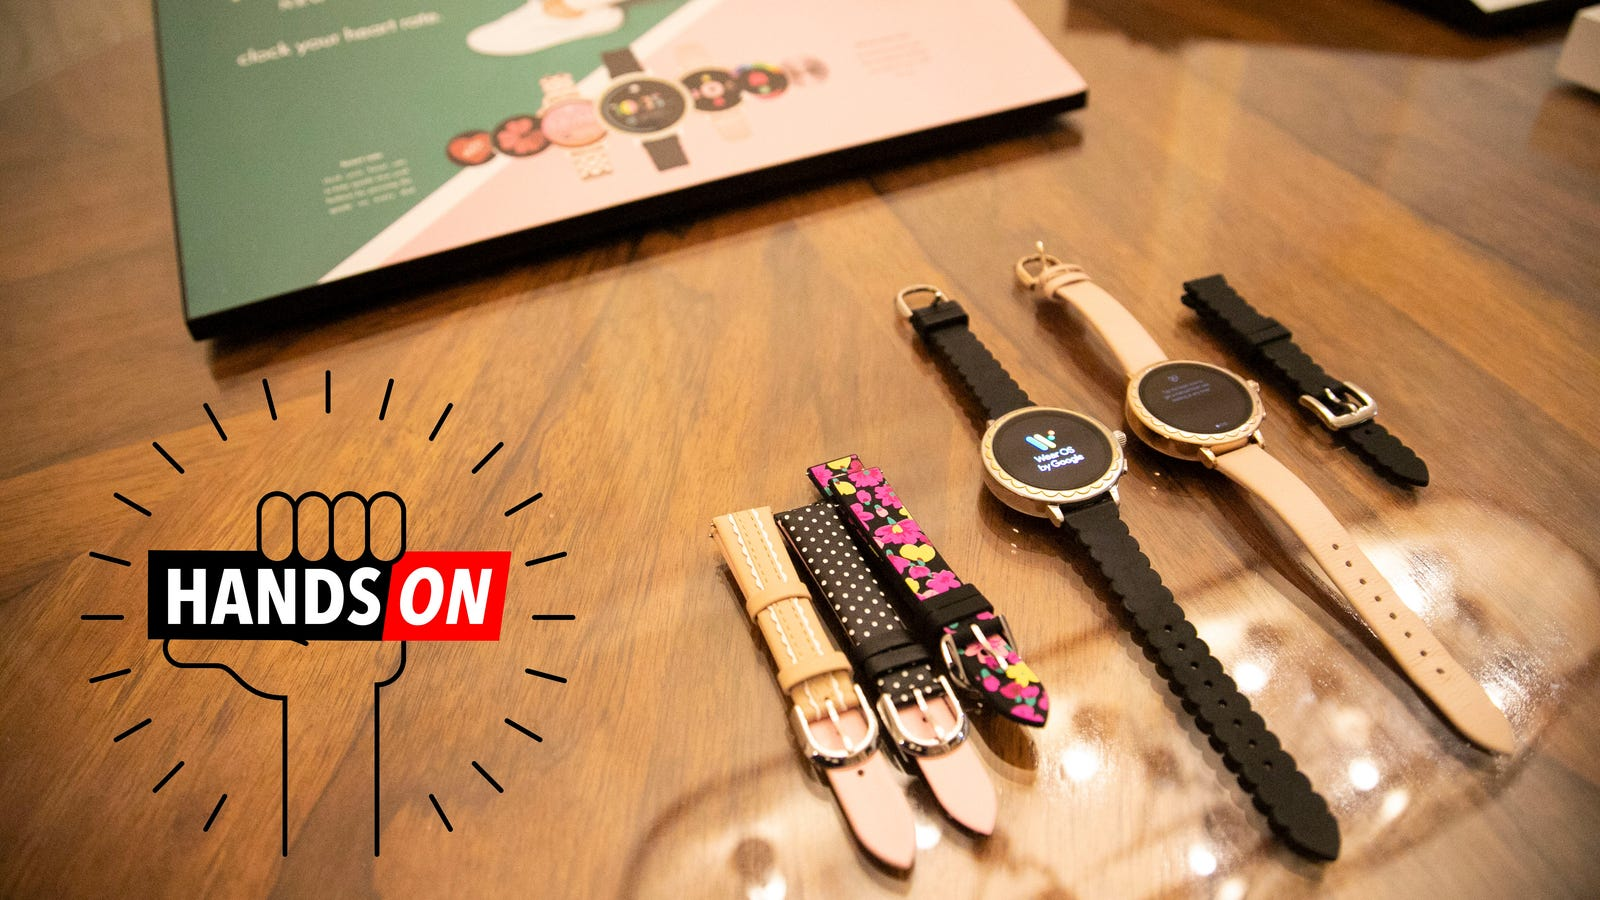 QnA VBage Fossil's Kate Spade Smartwatch Finally Isn't Just Dumb Wrist Candy